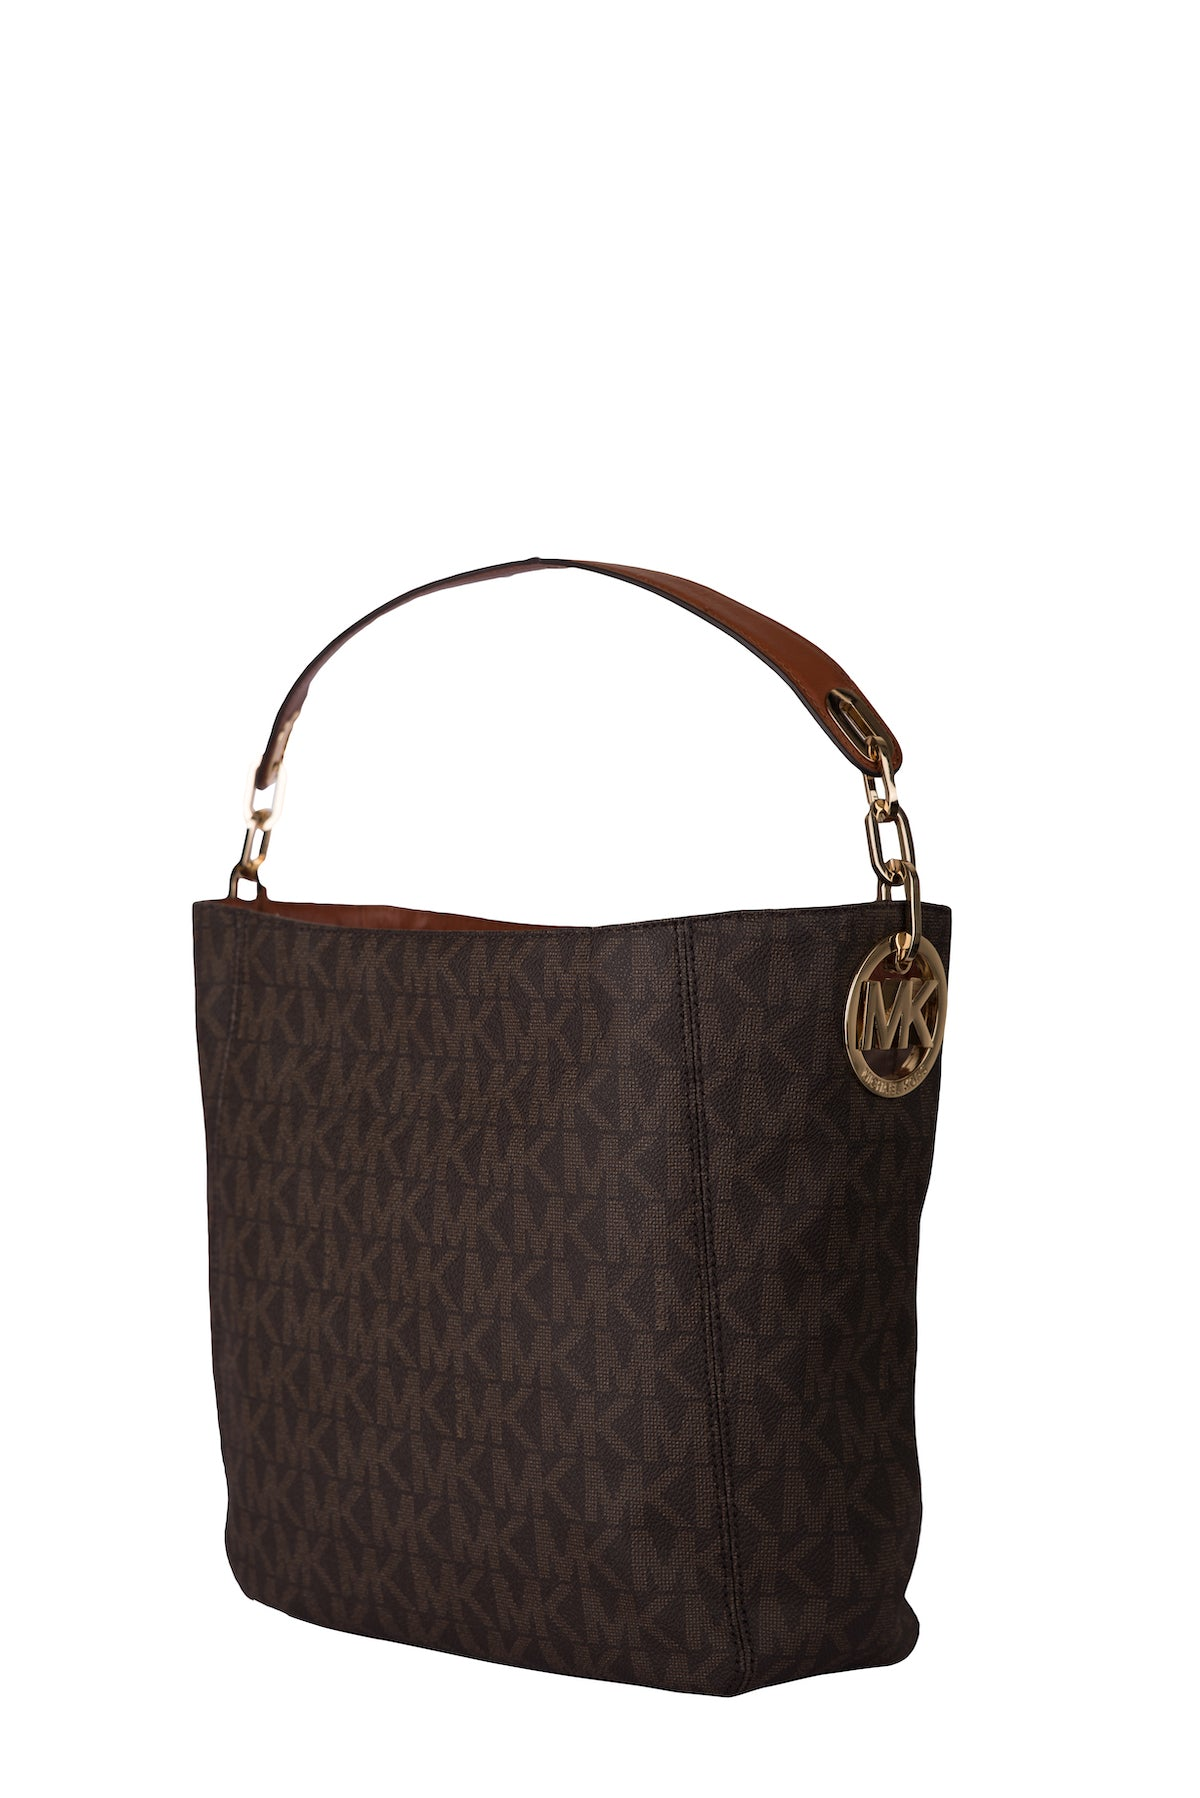 Michael Kors Signature Hobo